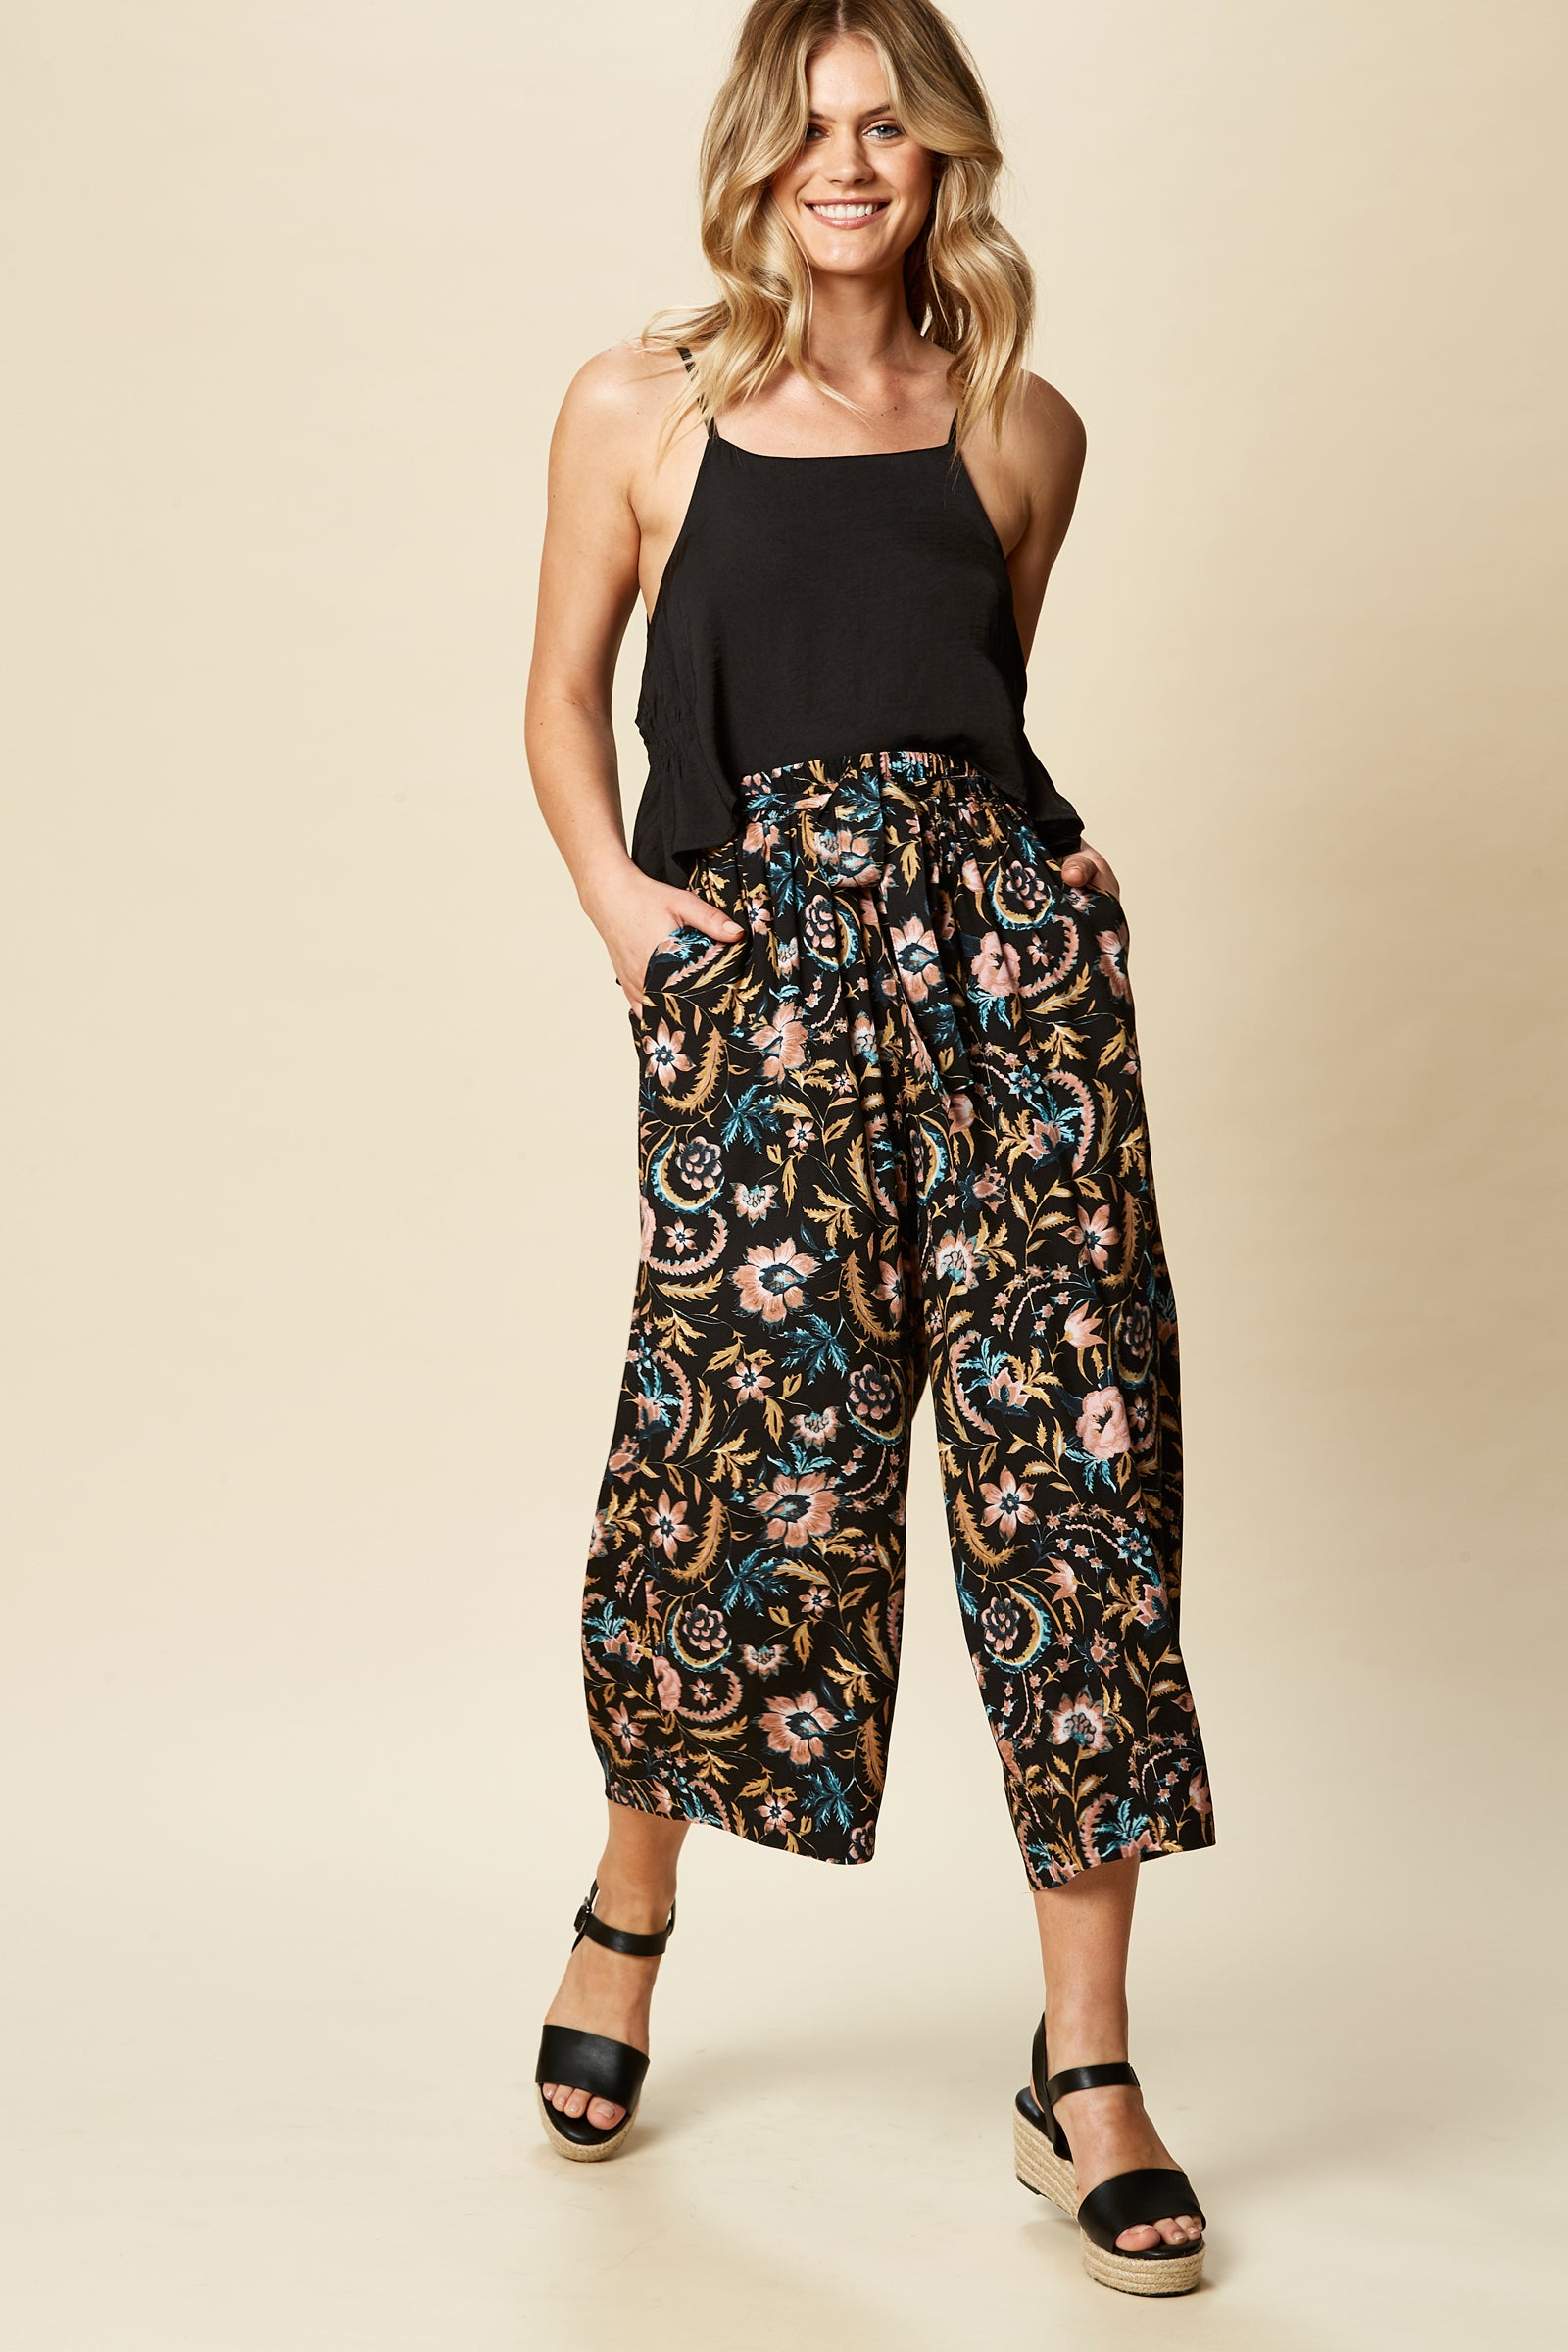 Zena Pant - Black Botanical - eb&ive Clothing - Pant Relaxed